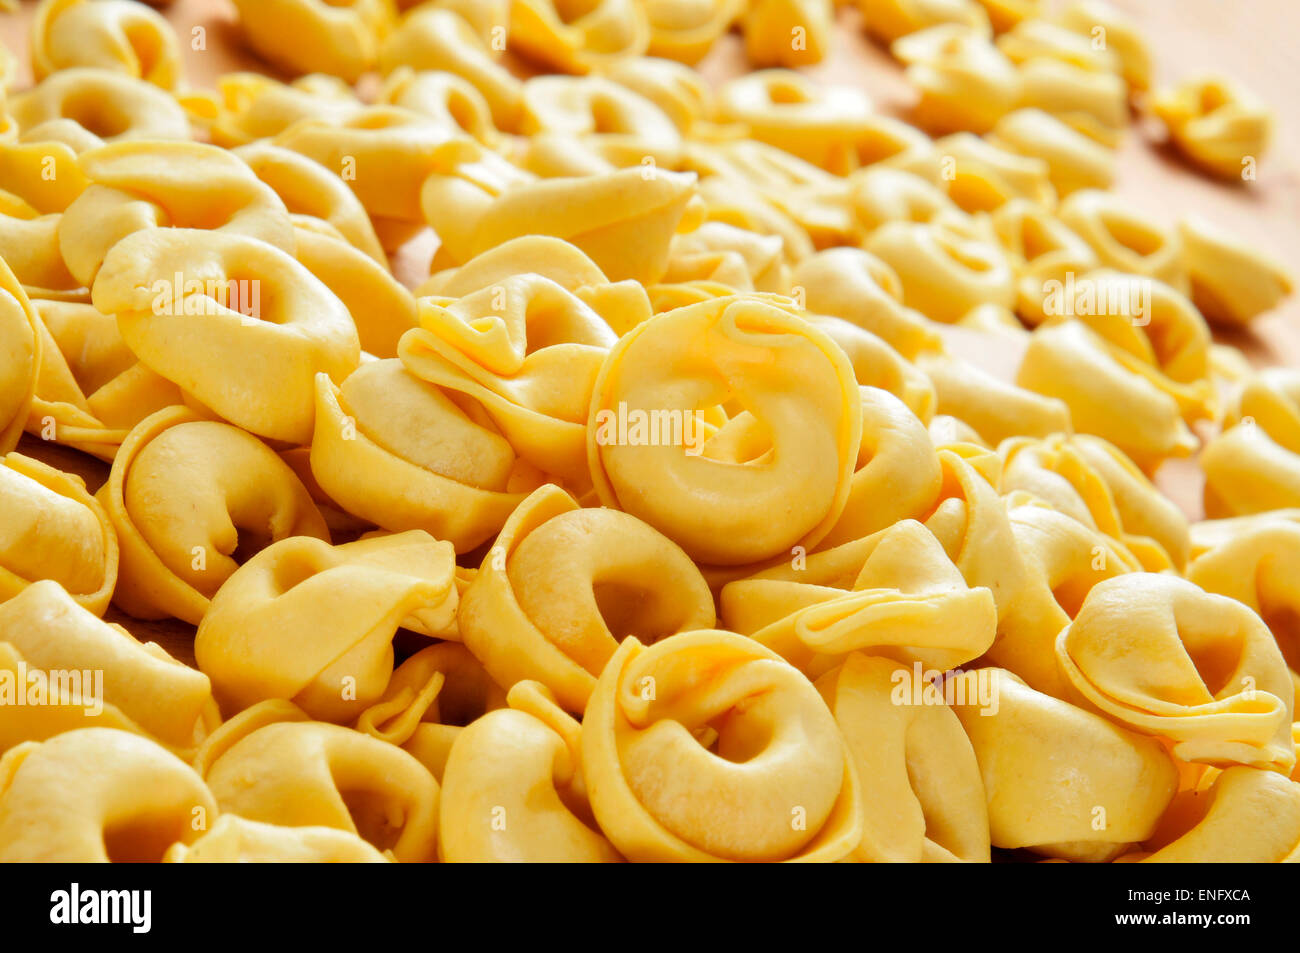 closeup of a pile of uncooked tortellini on a wooden table - Stock Image